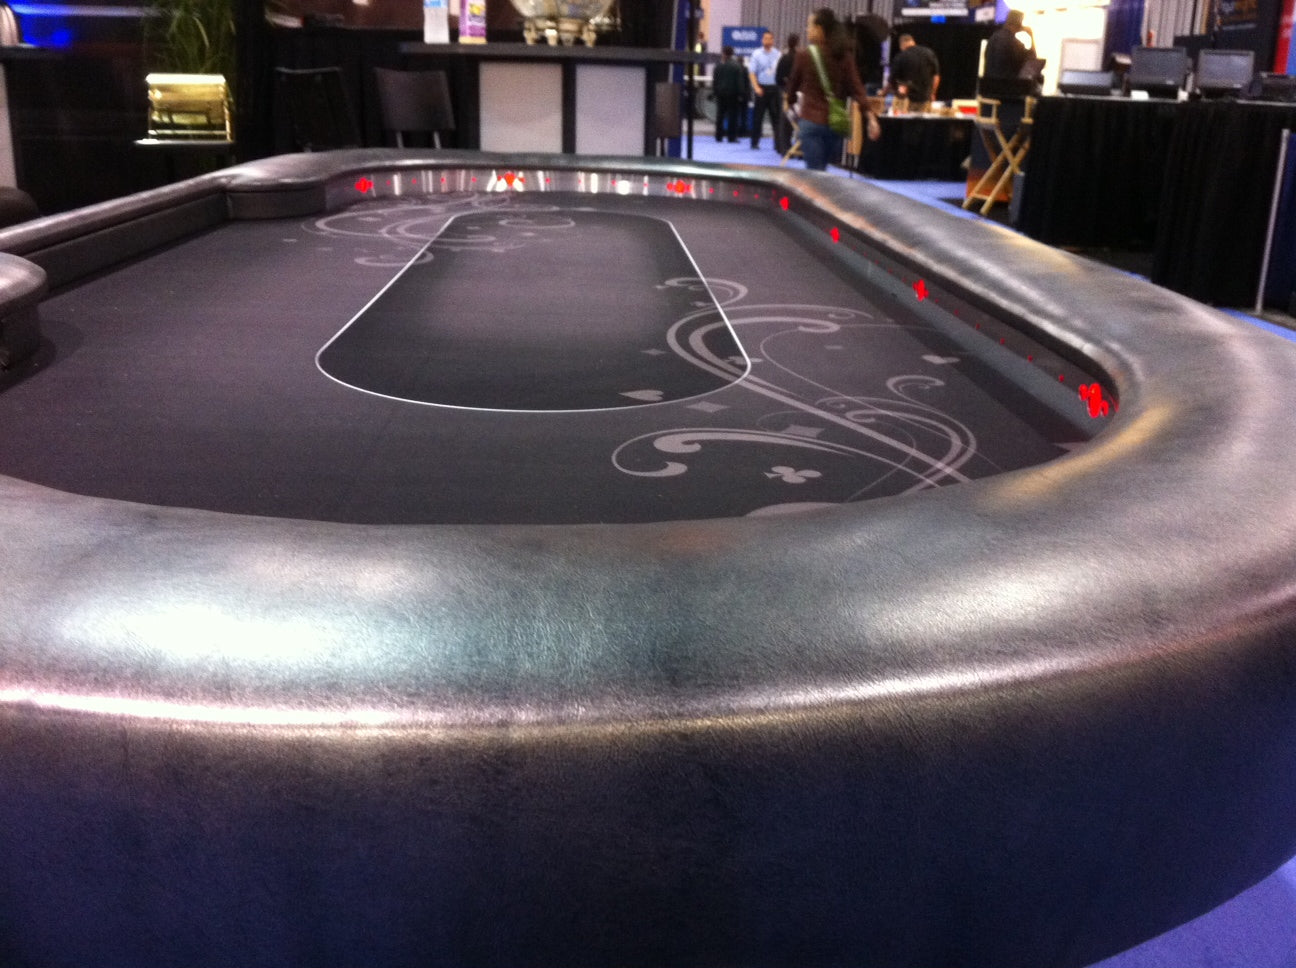 Feature poker table